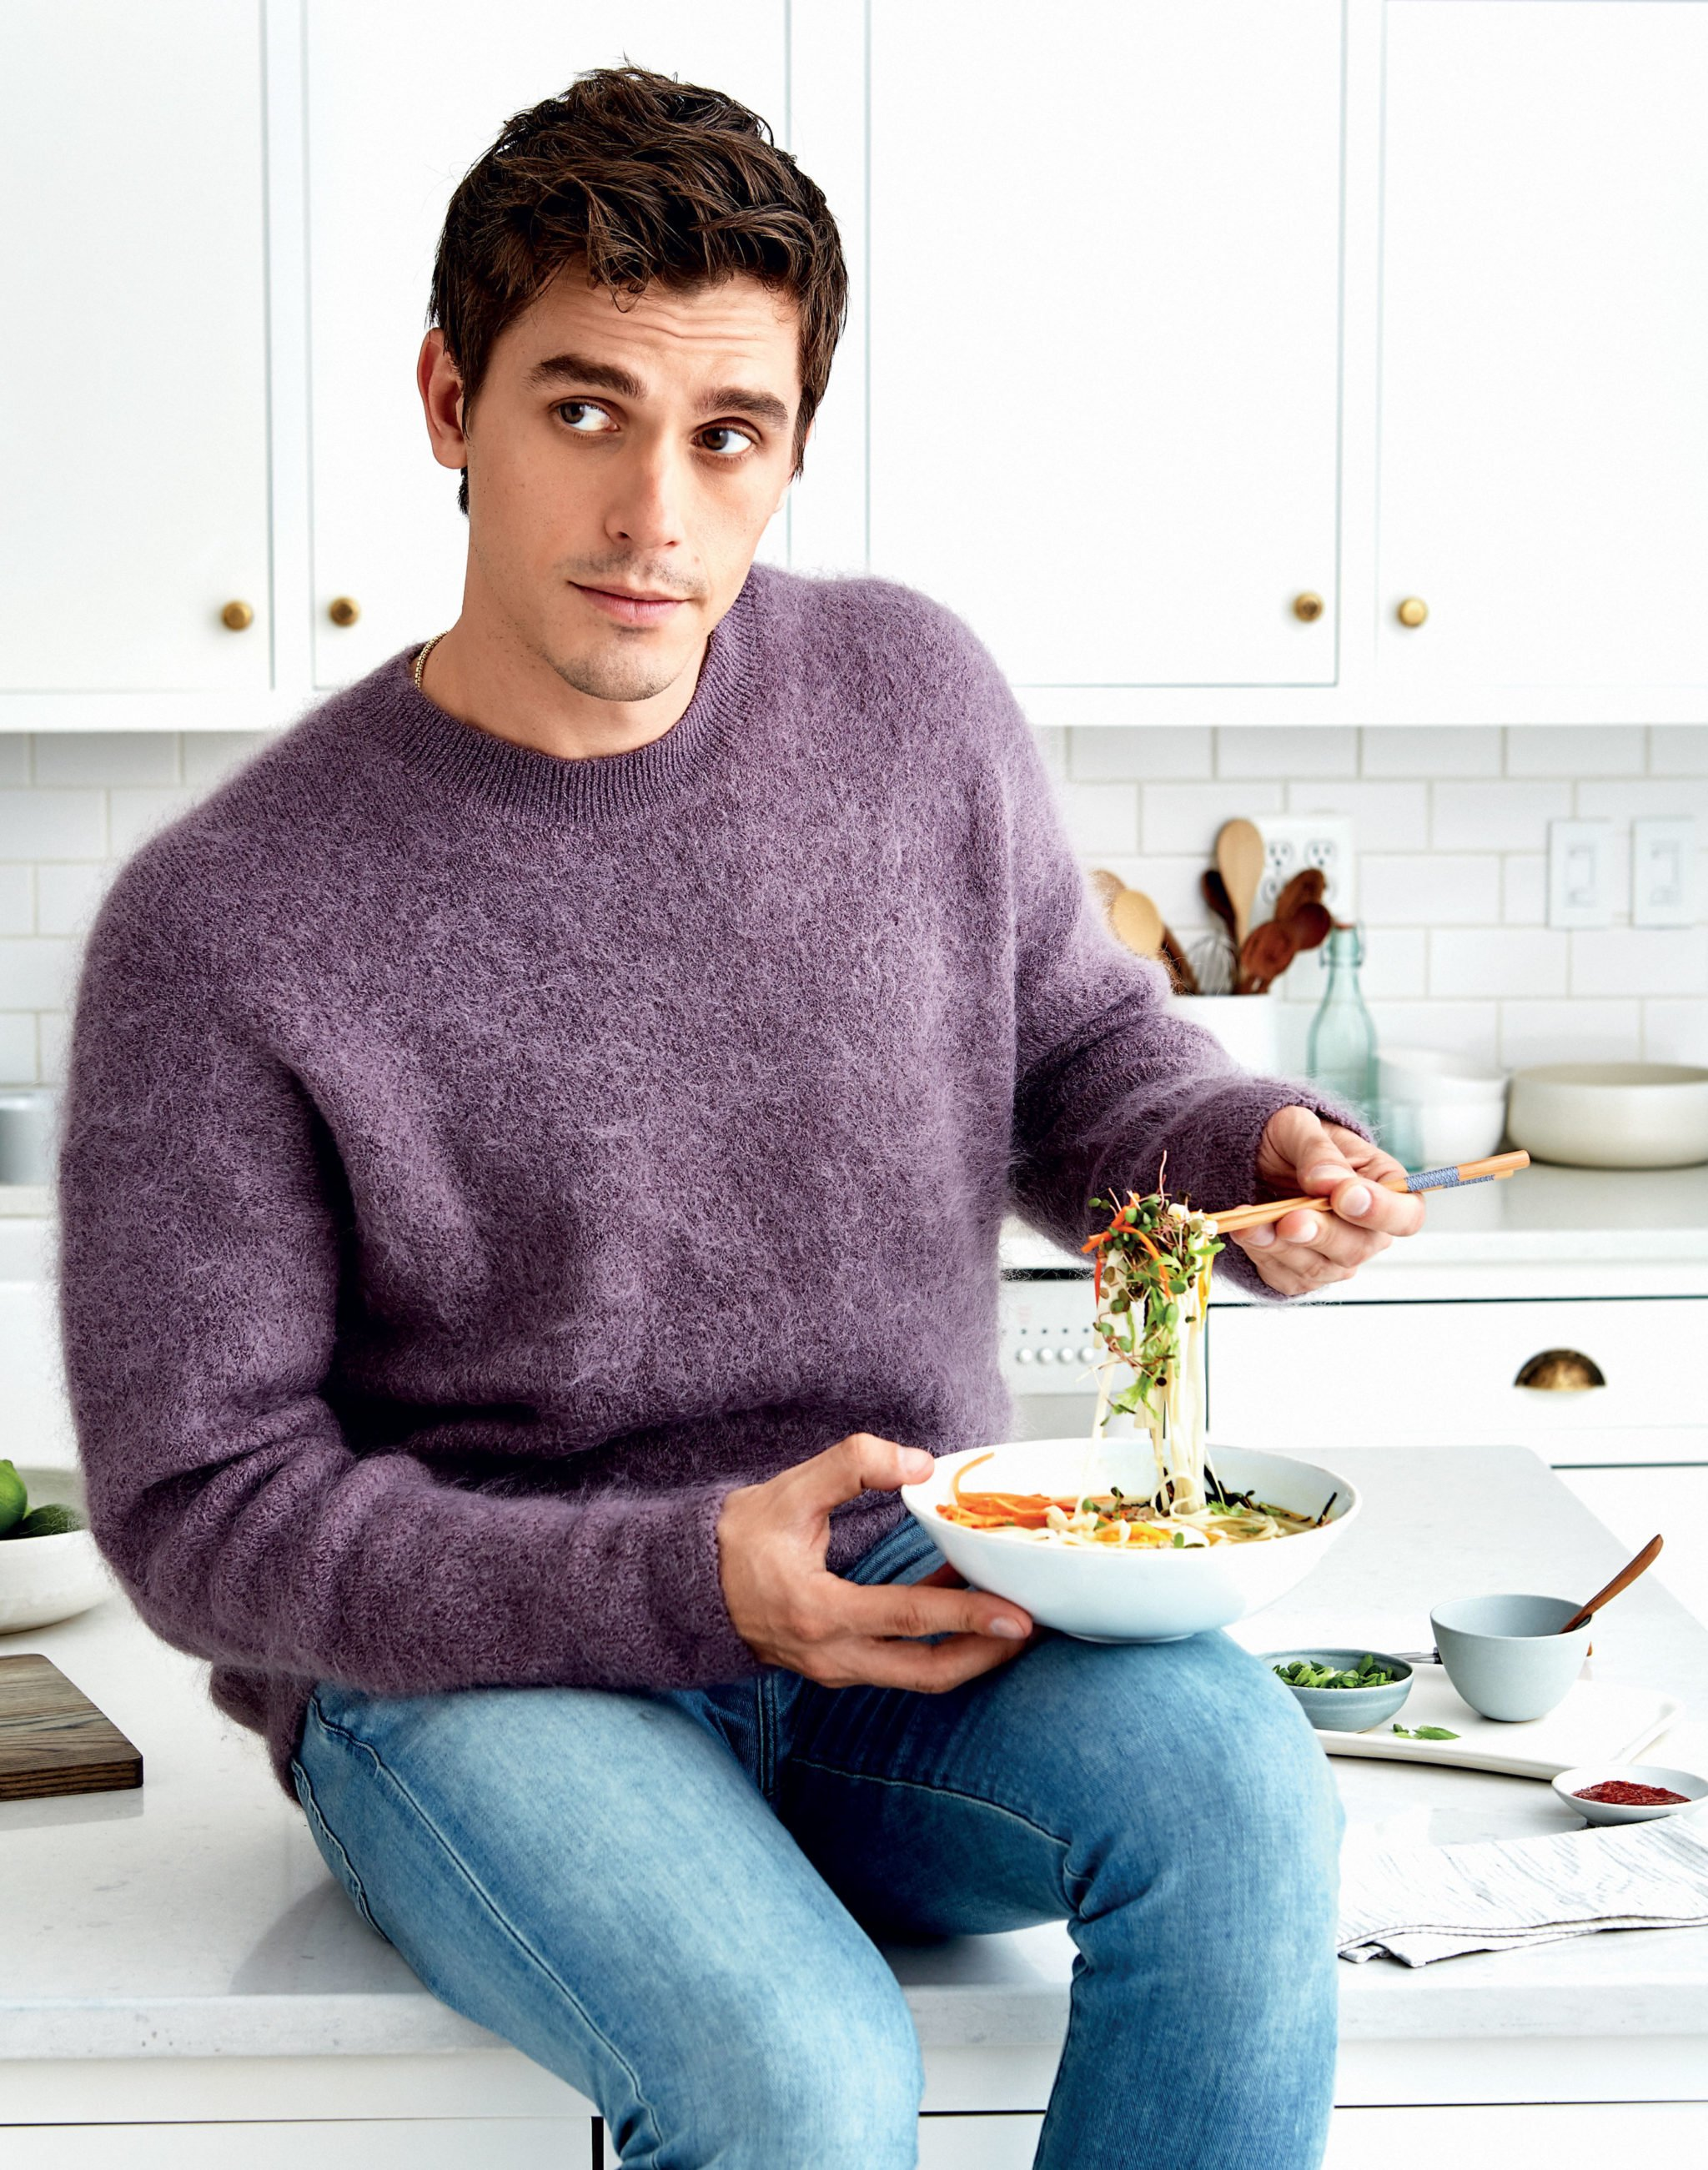 Queer Eye star Antoni Porowski comes to DC Tuesday for a stop on his cookbook tour. Photograph by Paul Brissman.